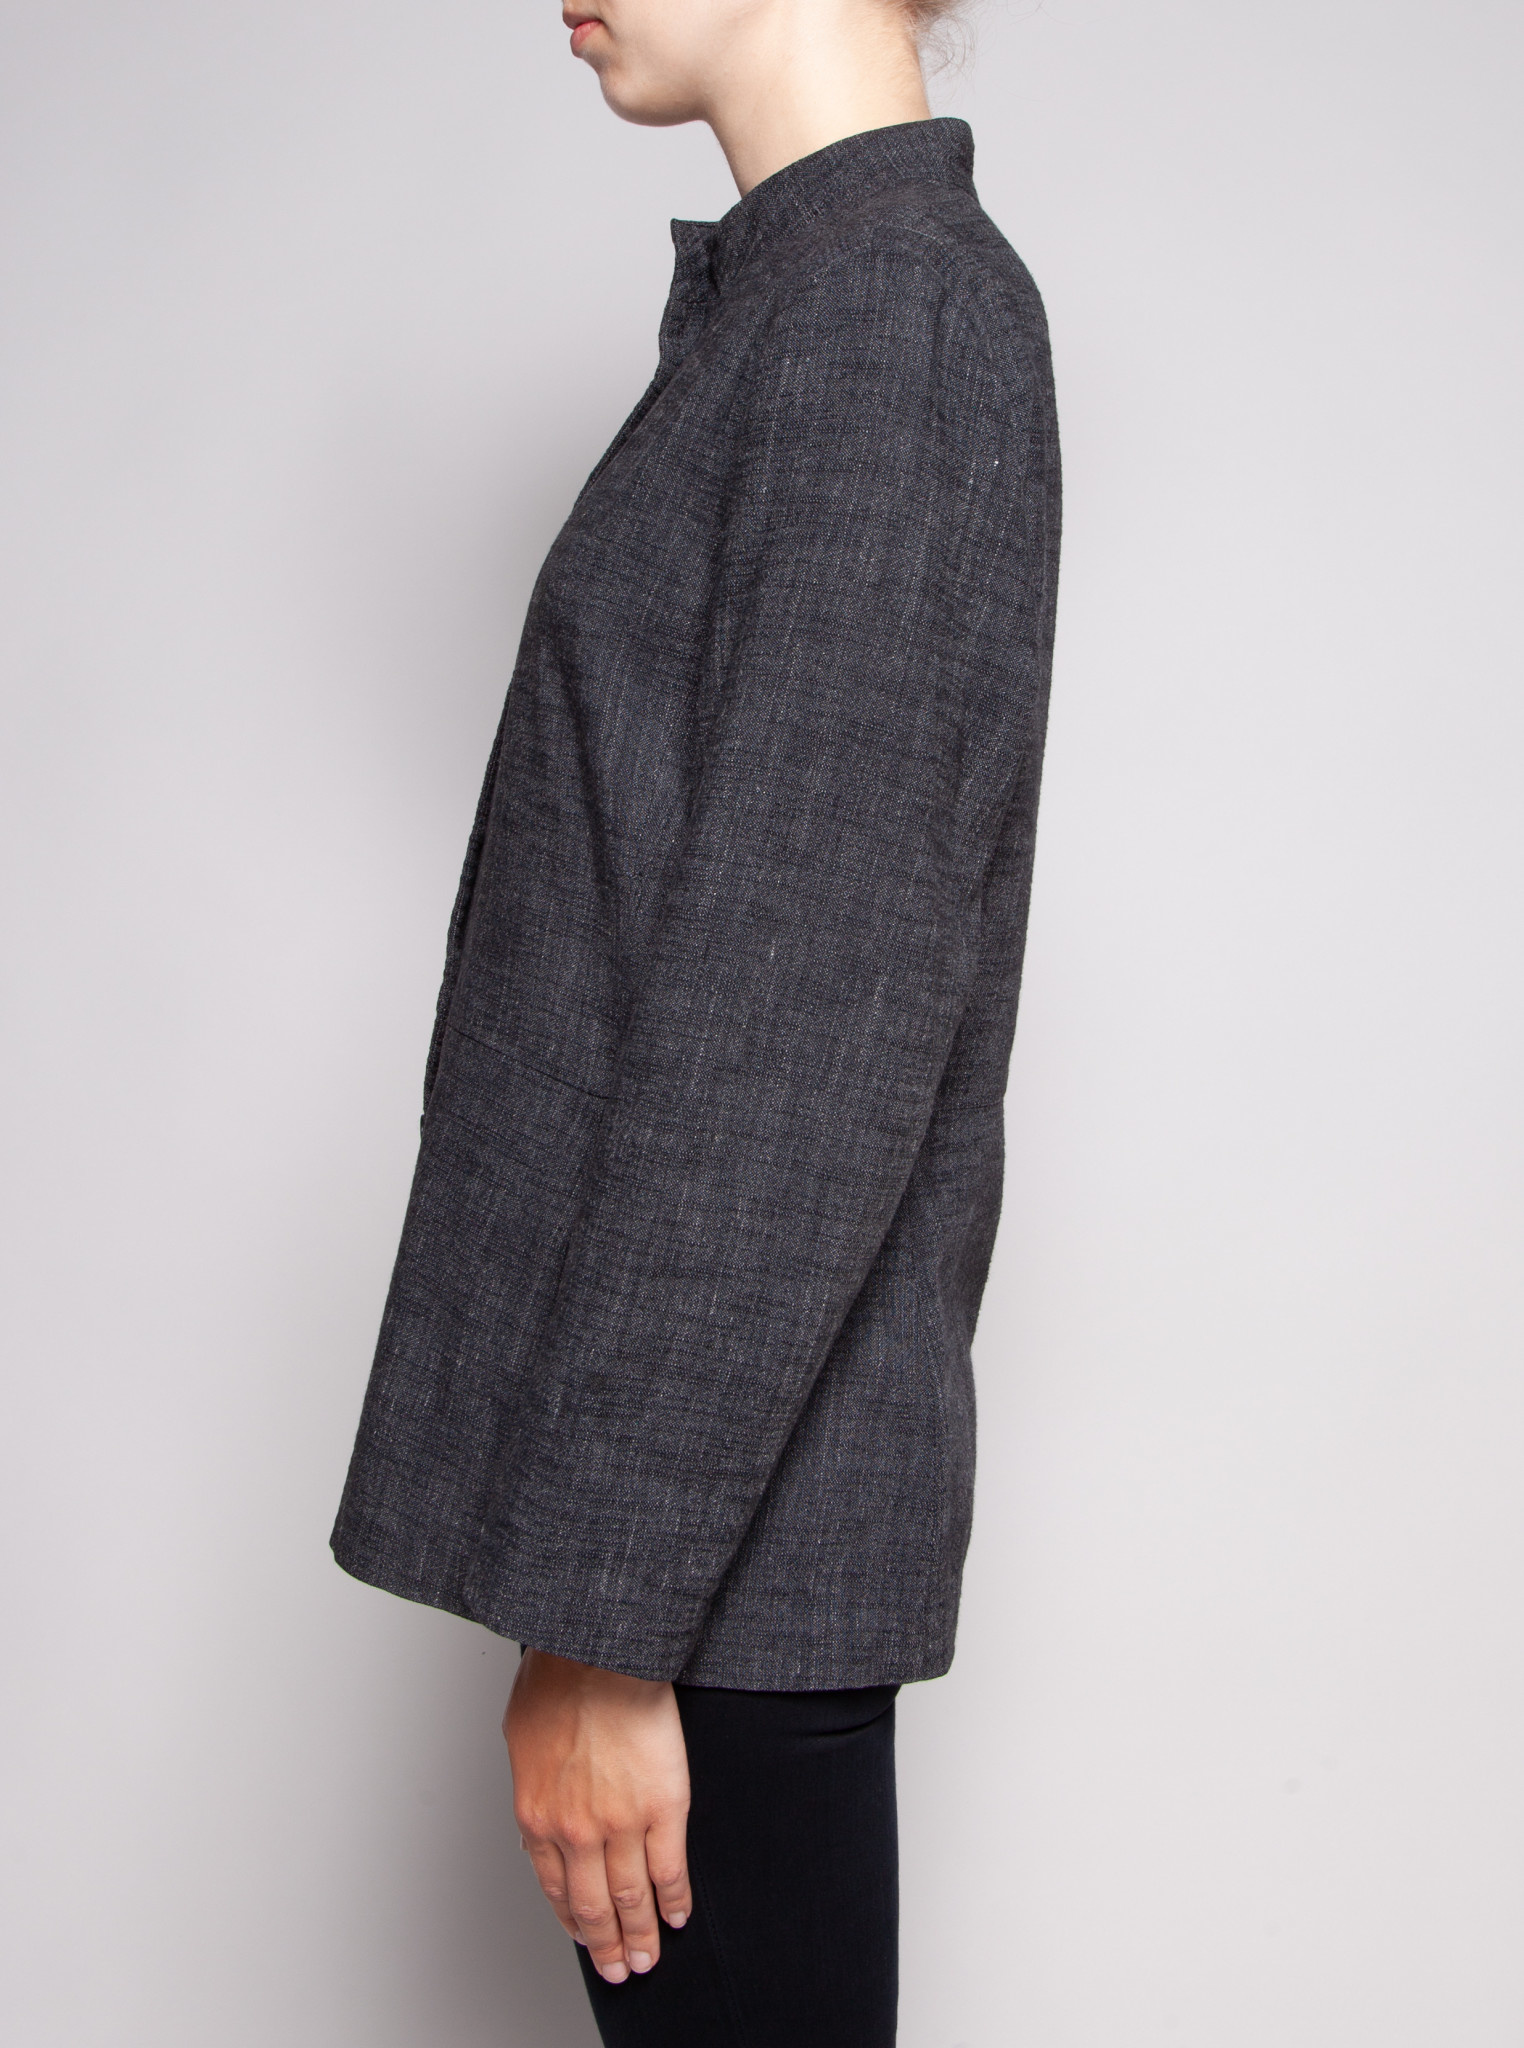 Eileen Fisher CHEMISIER CHINÉ CHARCOAL À COL MAO